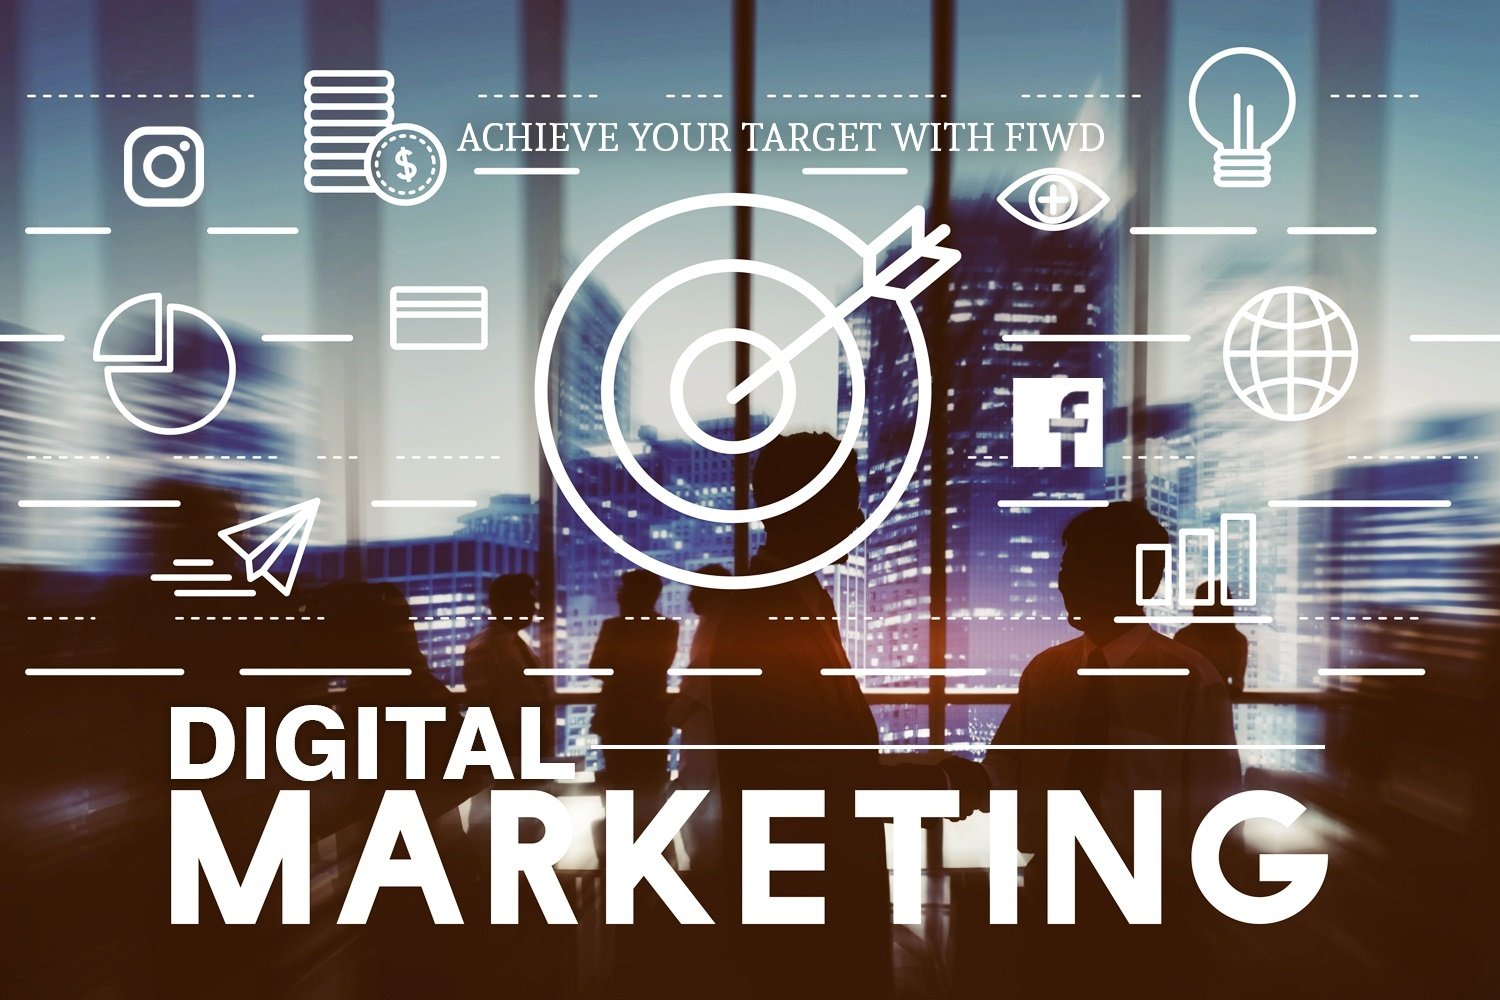 Which Services are included in Digital Marketing by Top Agencies?